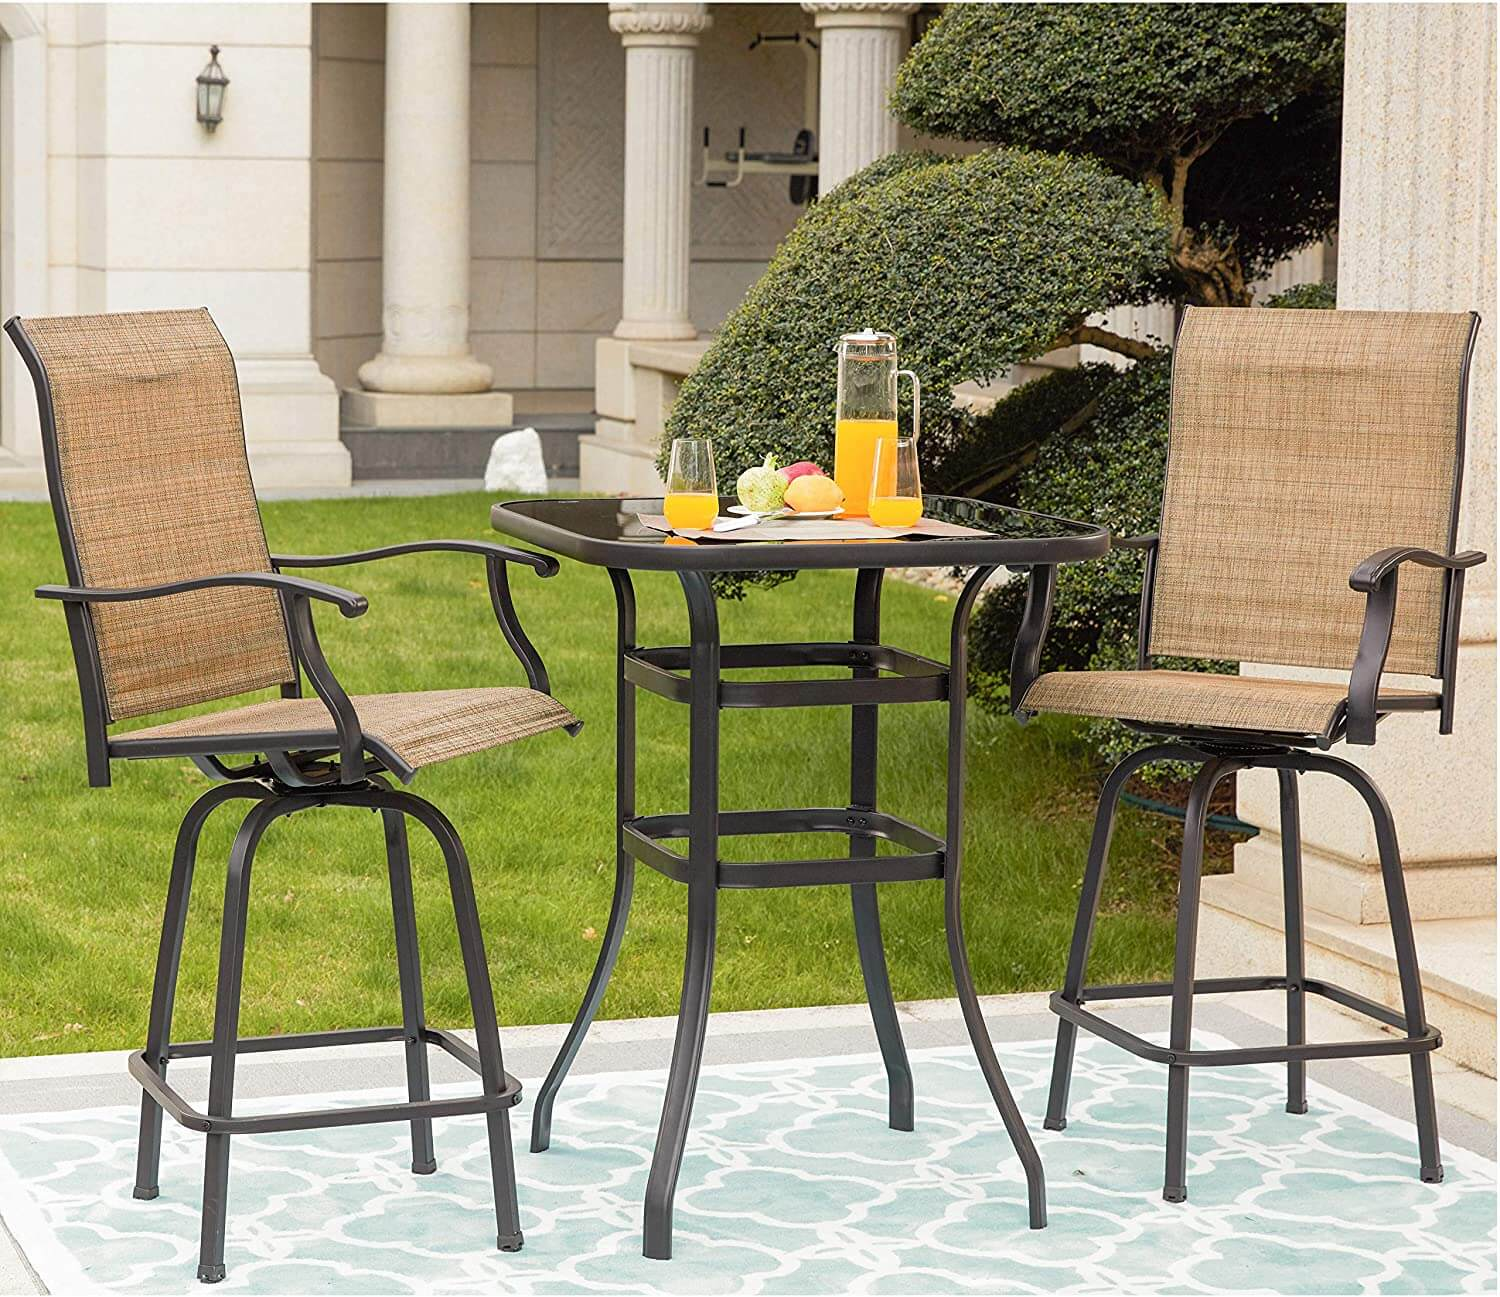 HOW TO CHOOSE BAR HEIGHT PATIO TABLE